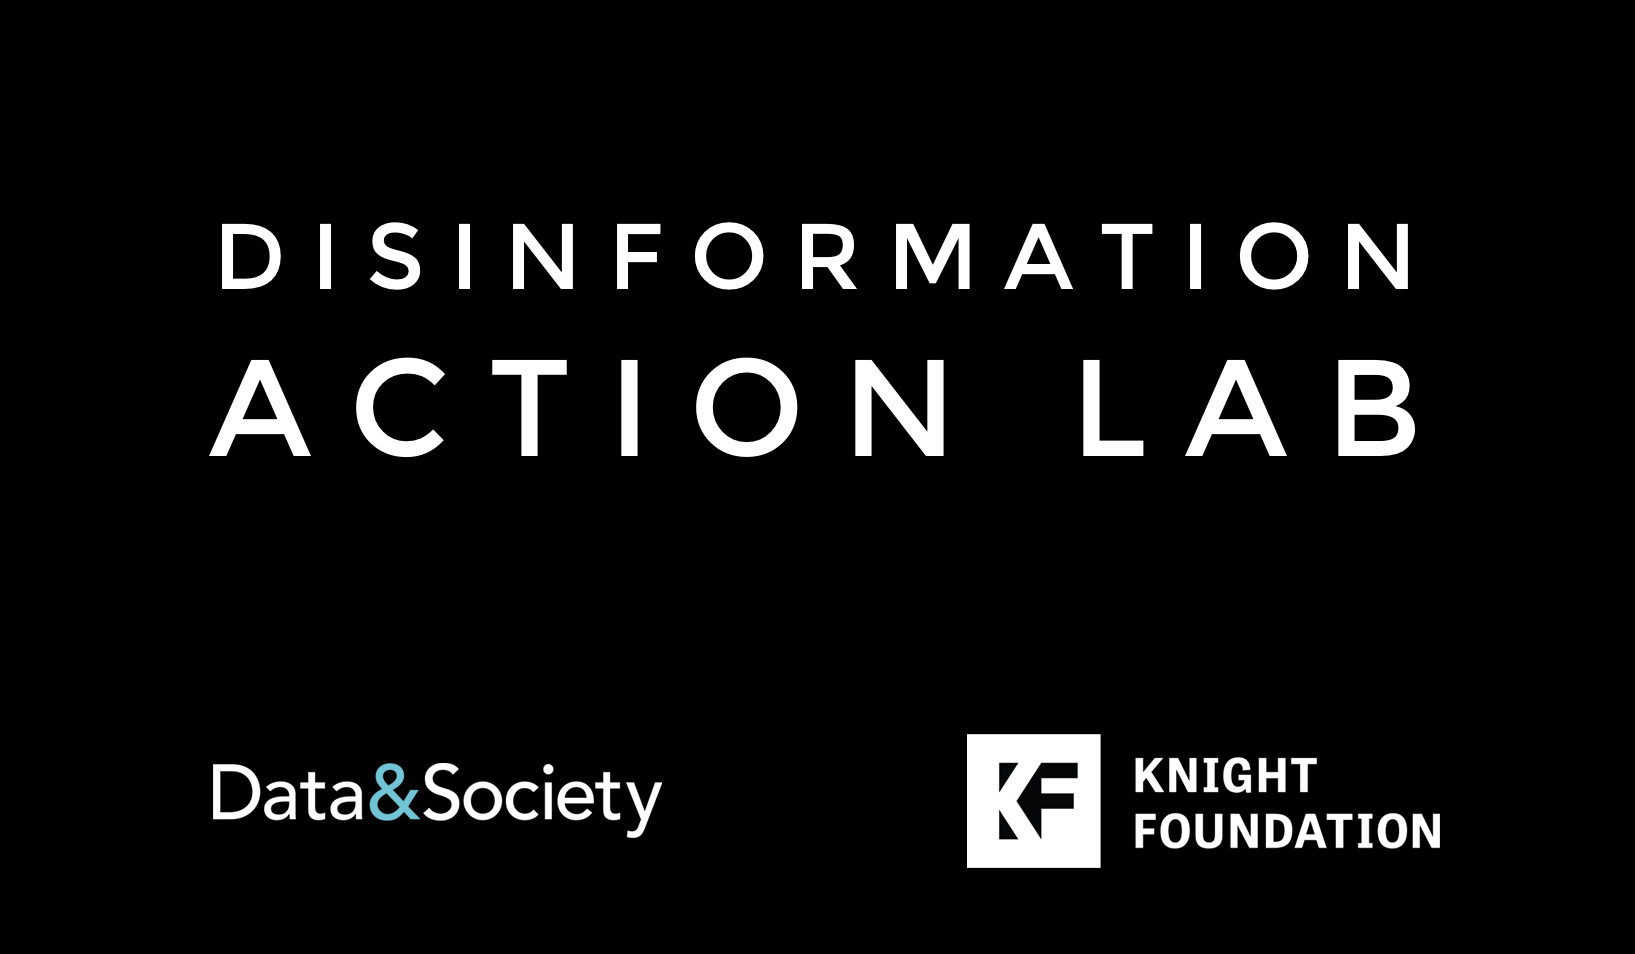 Disinformation Action Lab